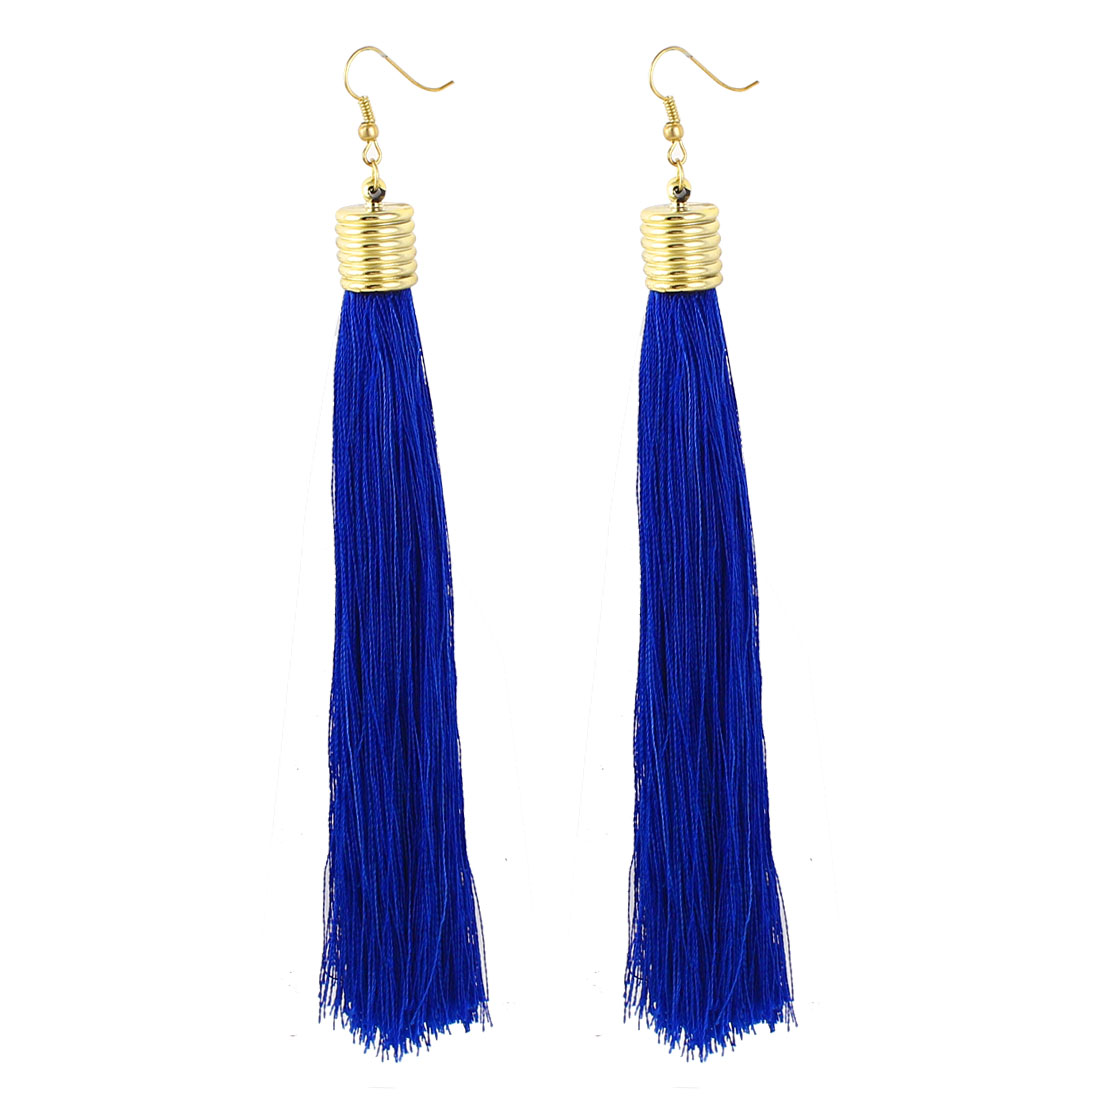 Lady Ear Decoration Nylon Tassels Pendant Fish Hook Earrings Royal Blue Pair